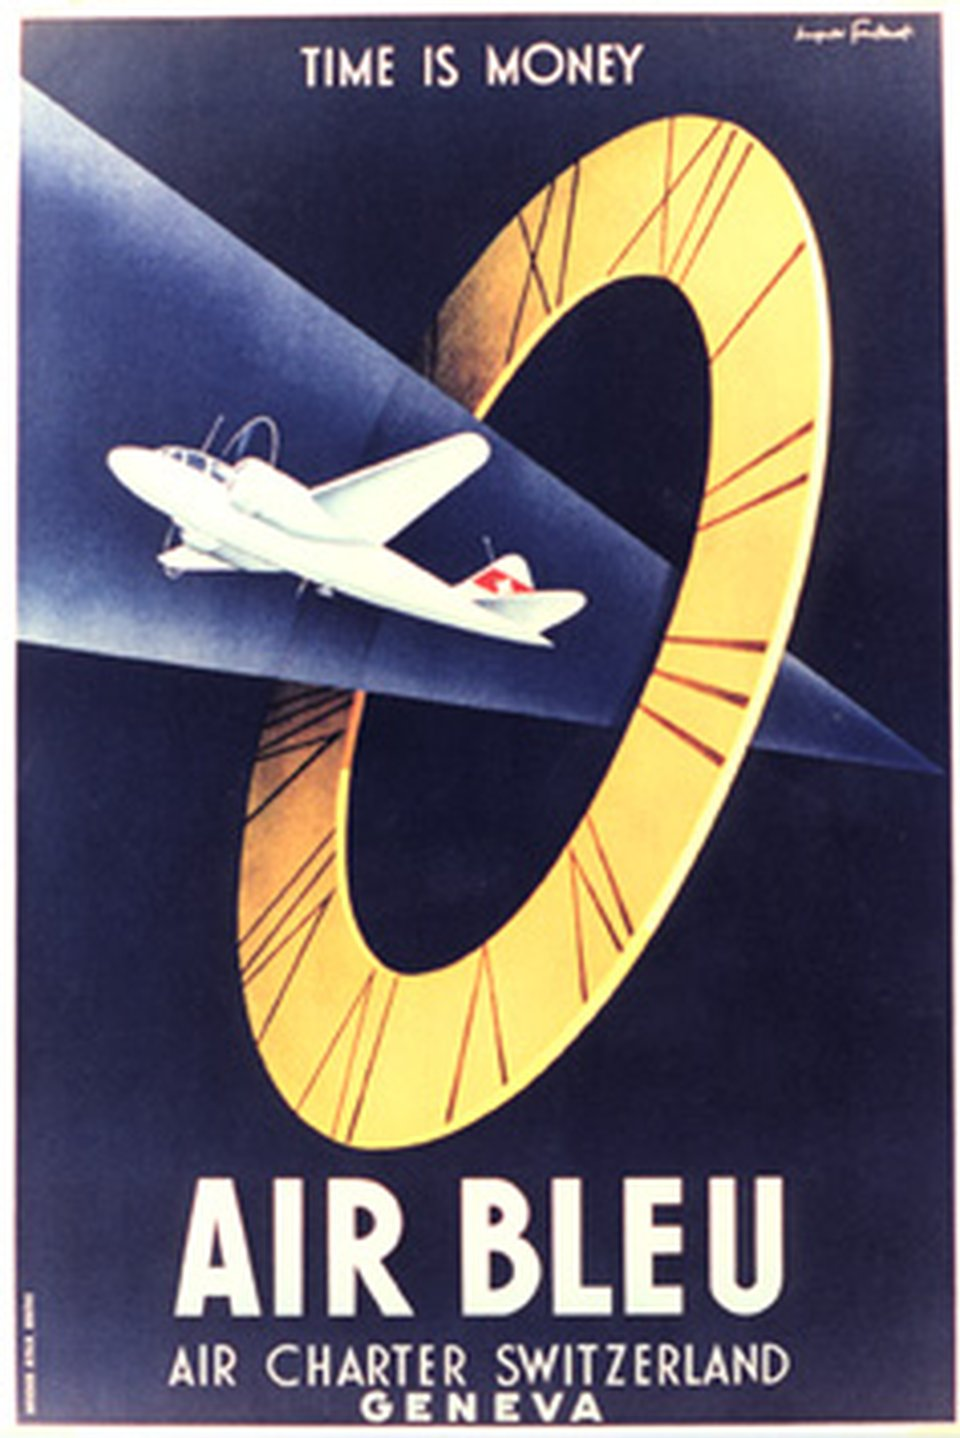 "Air Bleu,Air Charter, Switzerland, geneva, ""Time is money"" – Affiche ancienne – Hugues FONTANET – 1935"